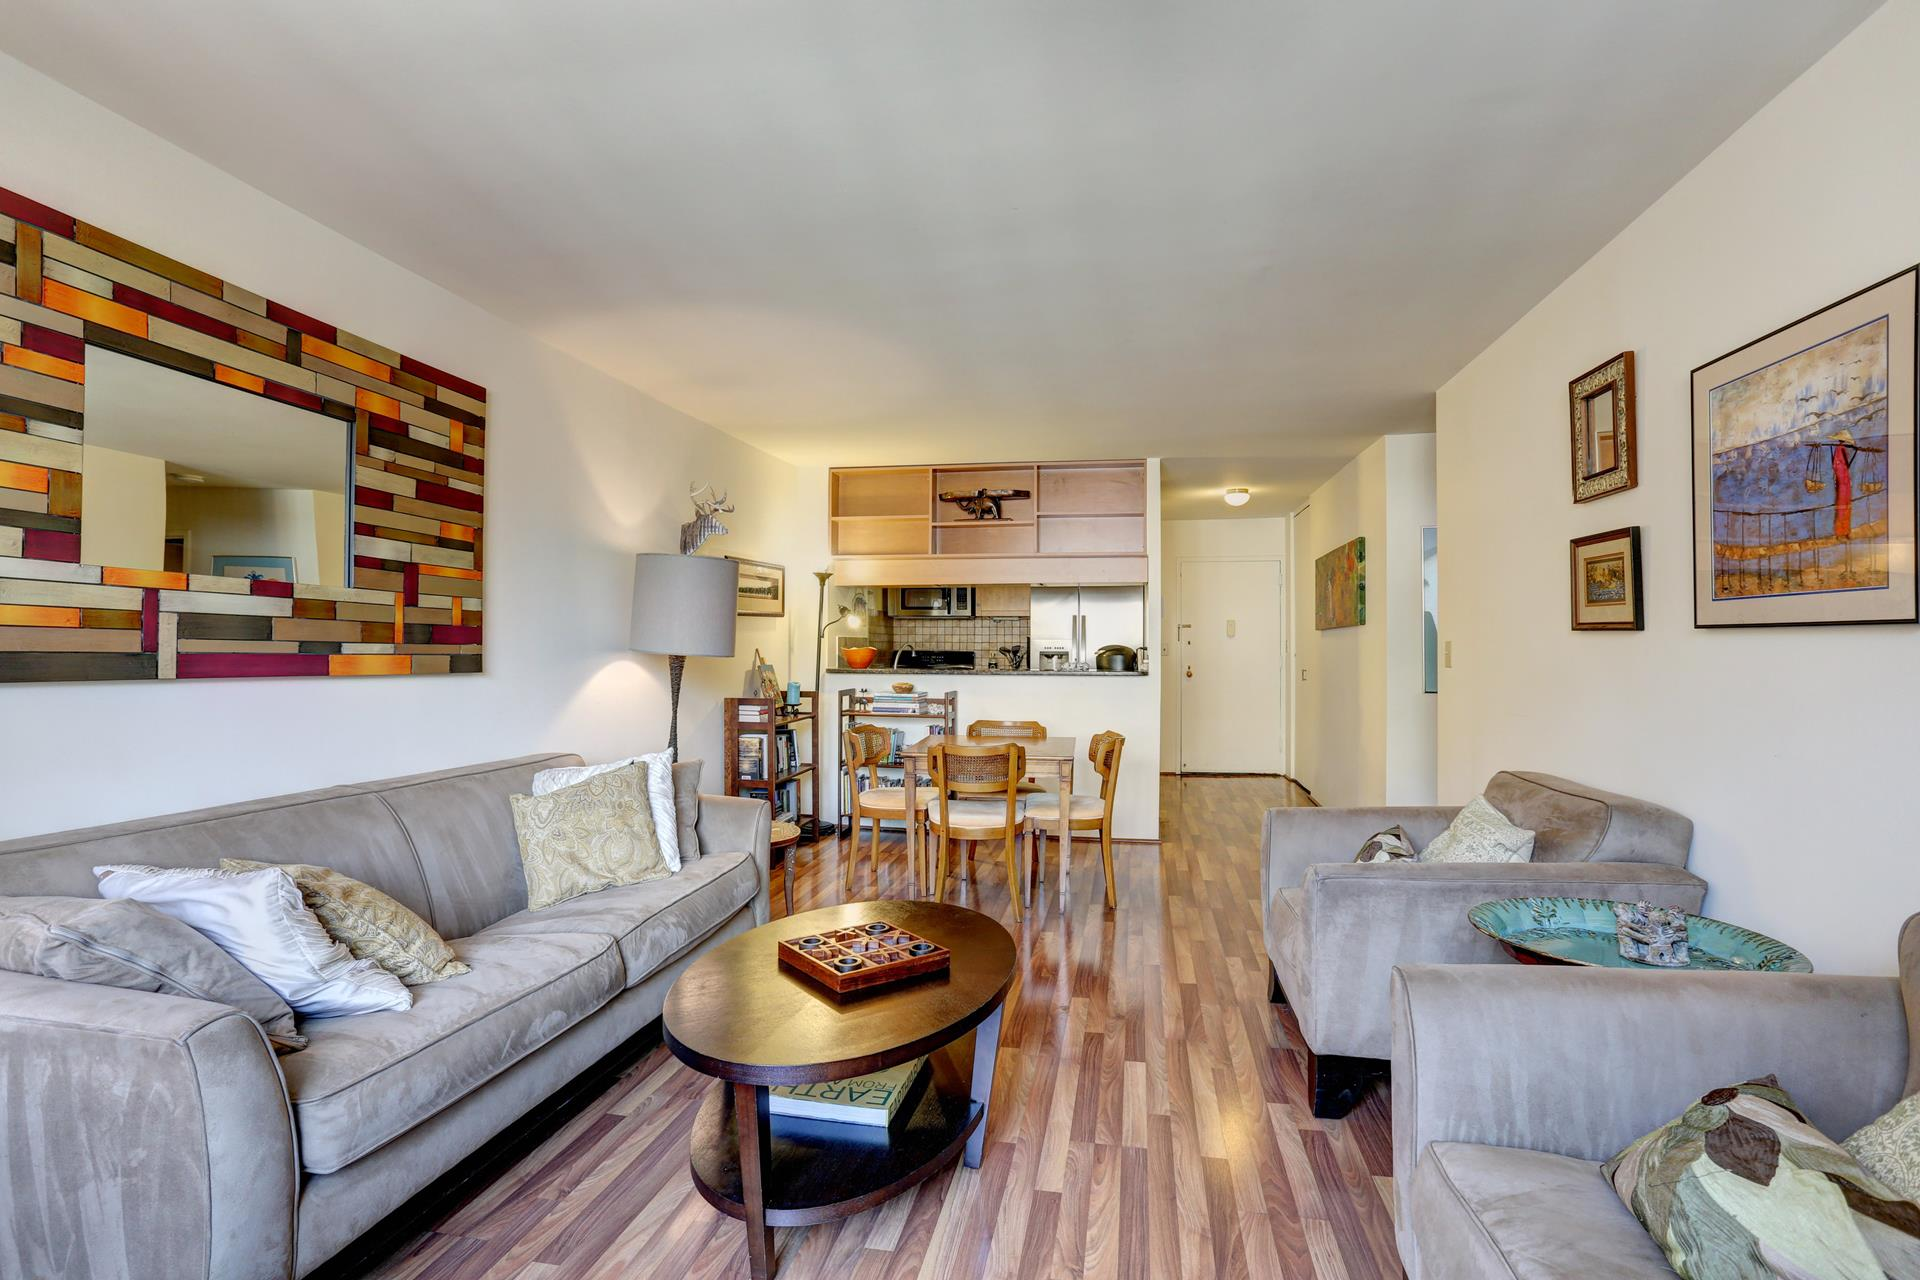 275 West 96th St, 14B - Upper West Side, New York